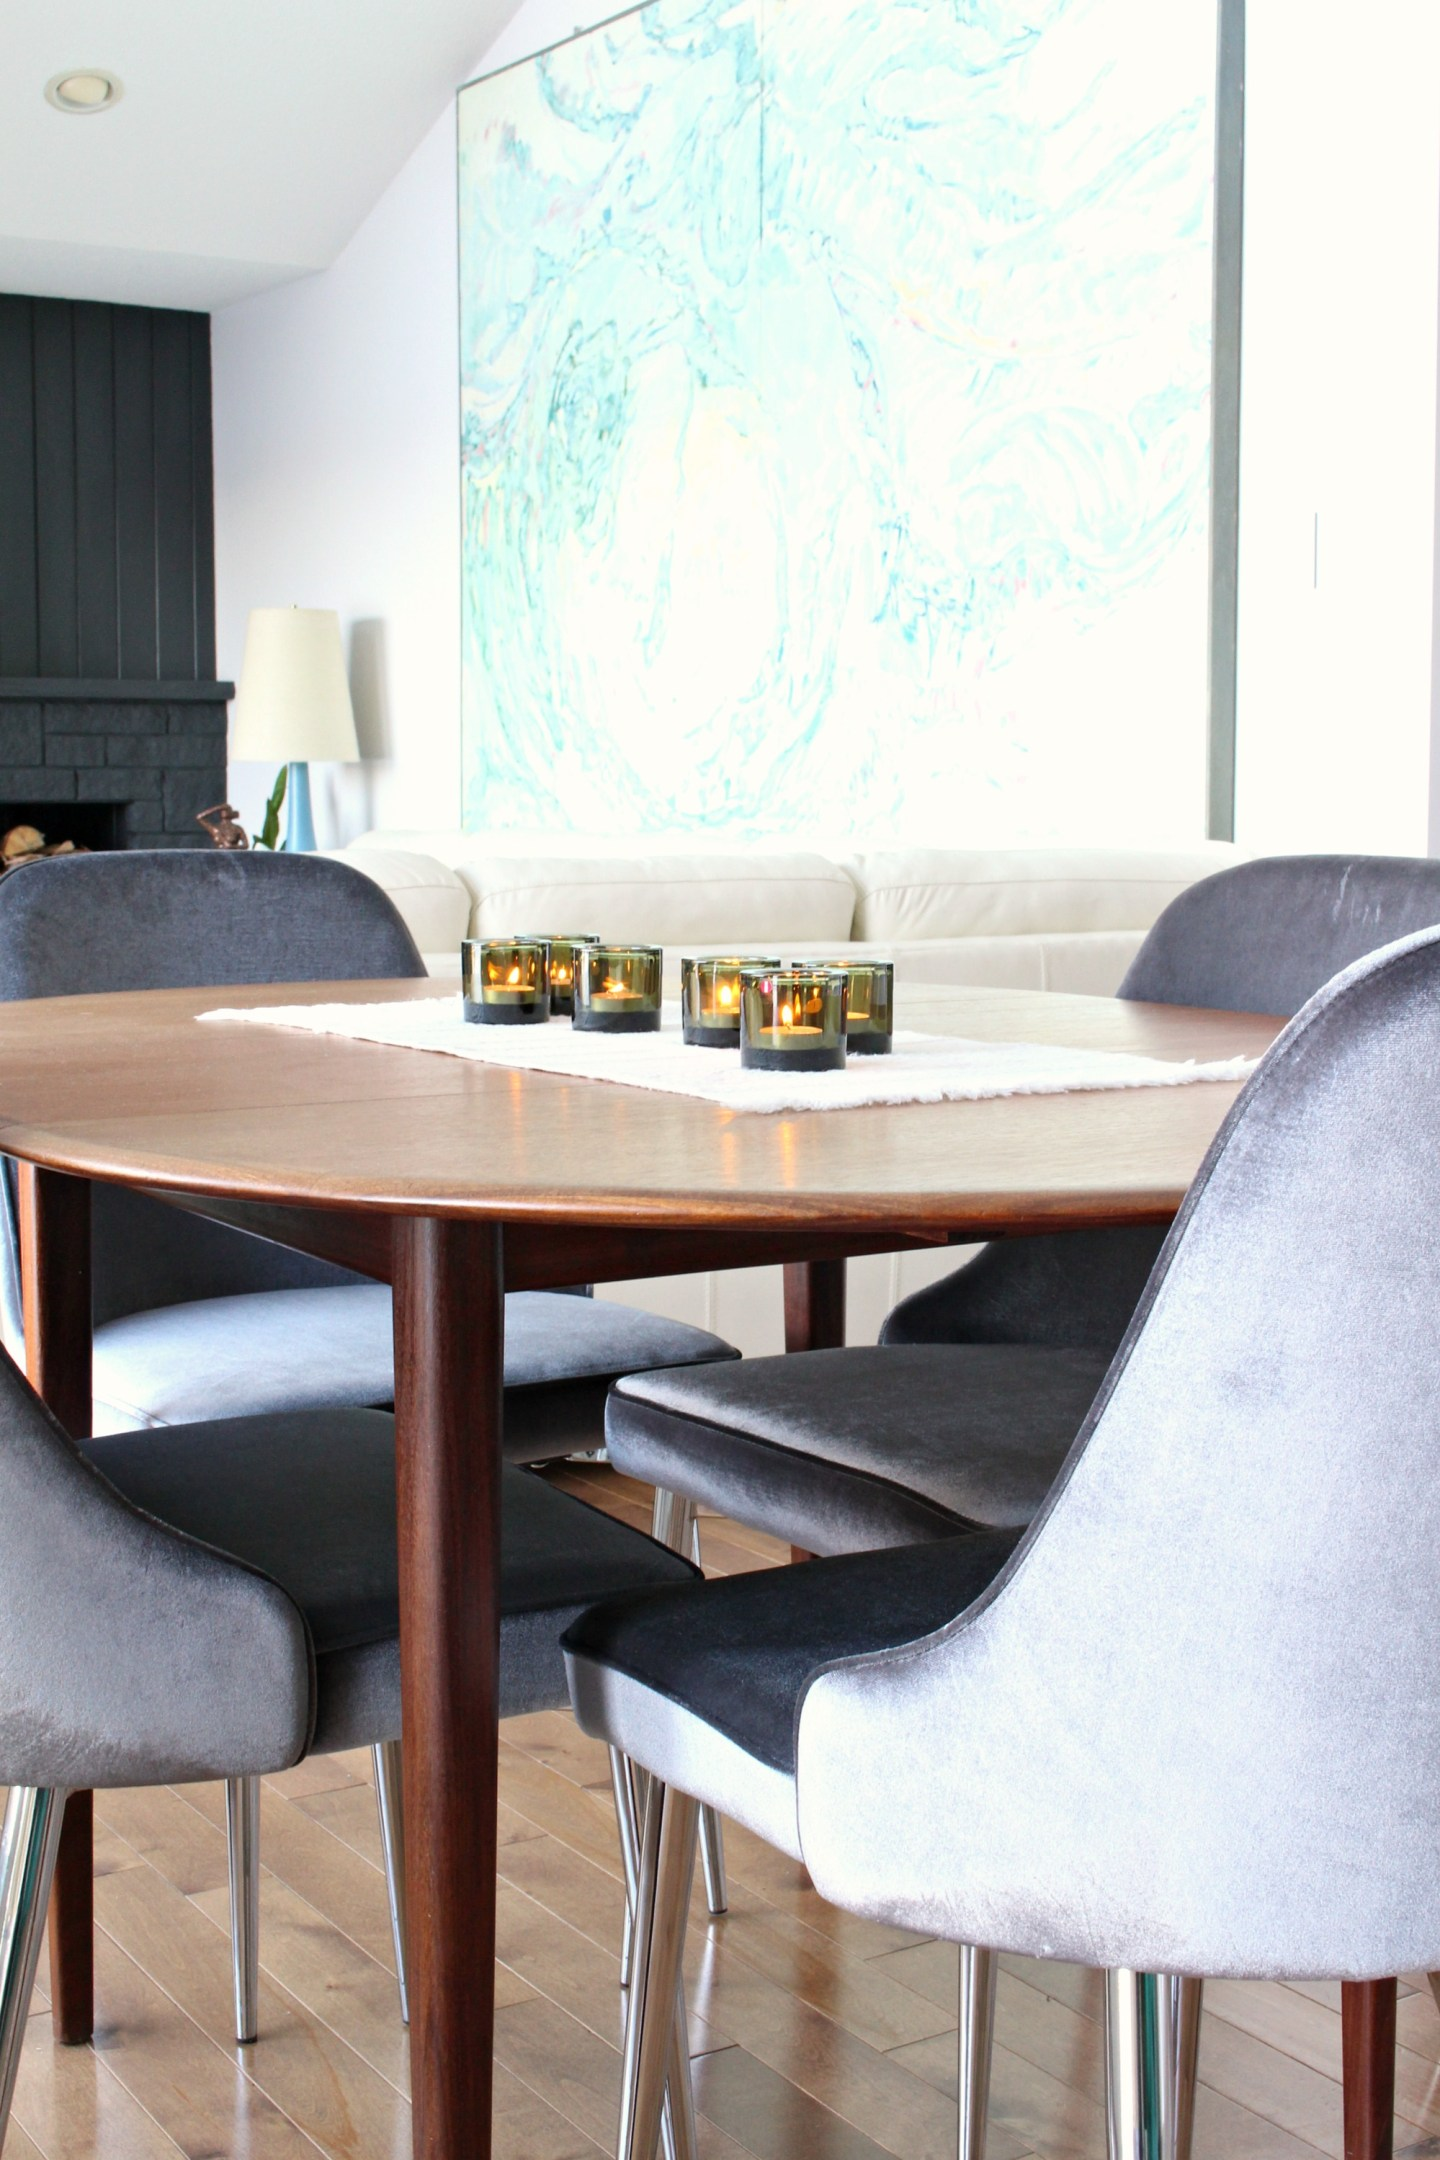 New grey velvet dining chairs 10 affordable mid century modern inspired dining chairs